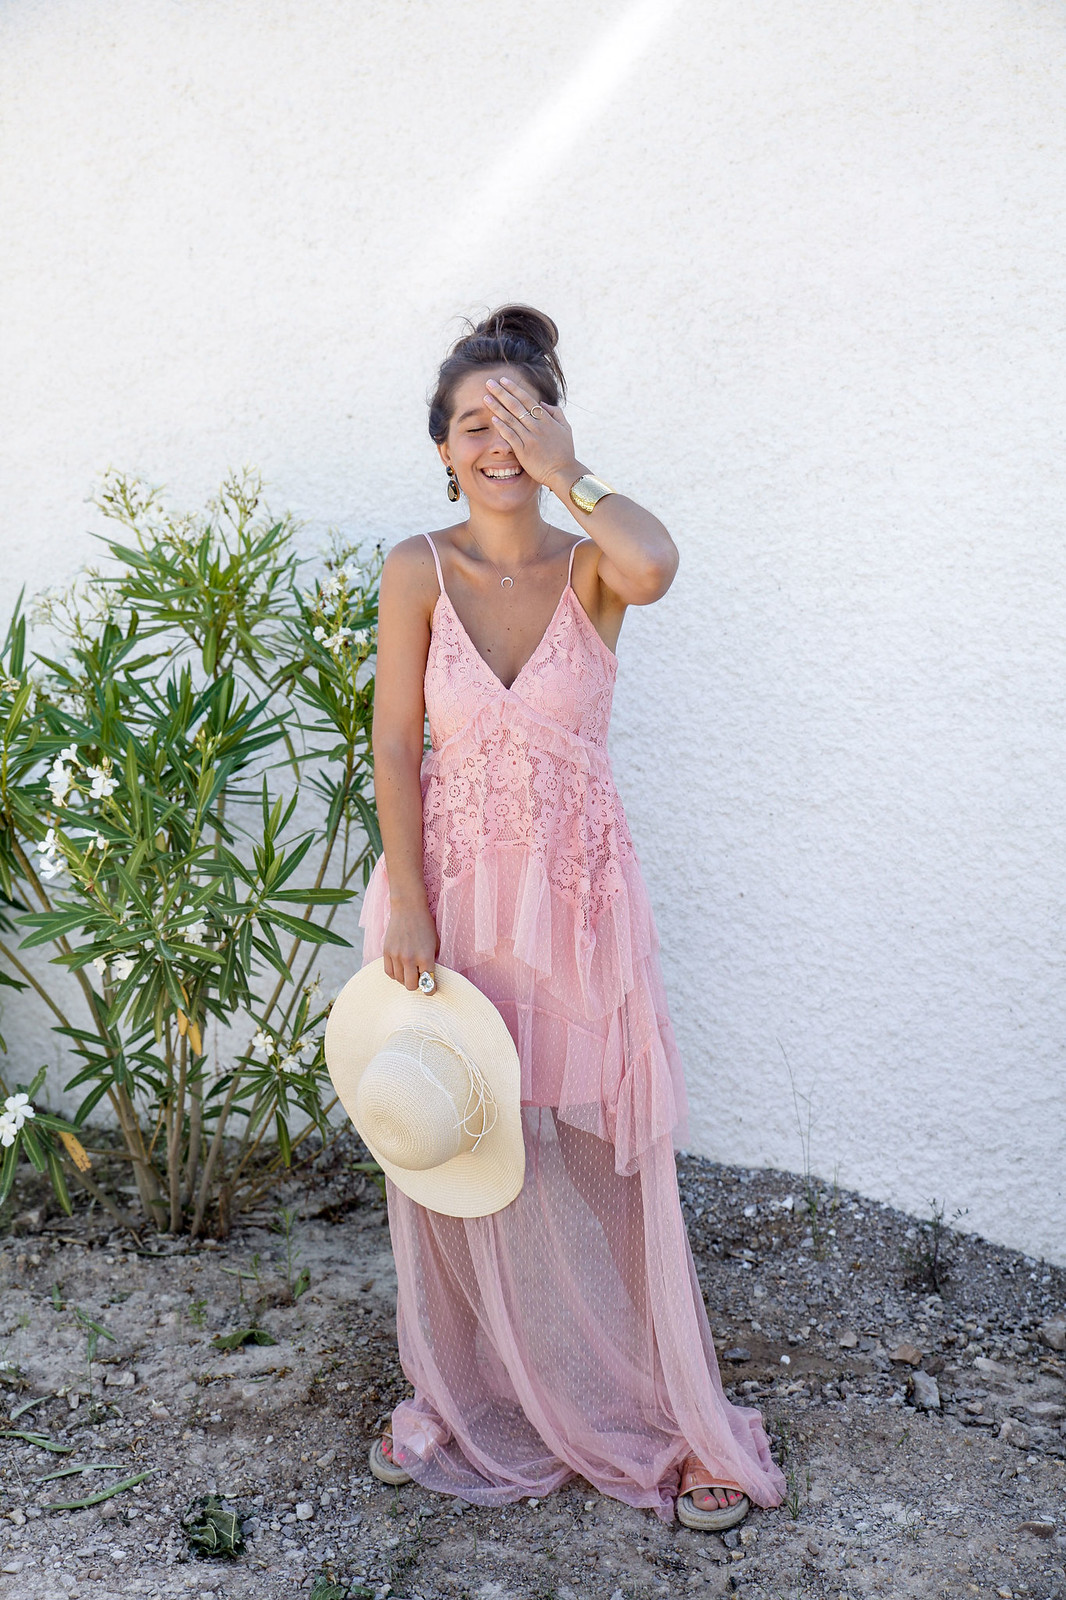 03_vestido_largo_rosa_para_verano_theguestgirl_influencer_noholita_collagevintage_sincerelyjules_ninauc_paulagonu_danity_paris_dress_ambassador_spain